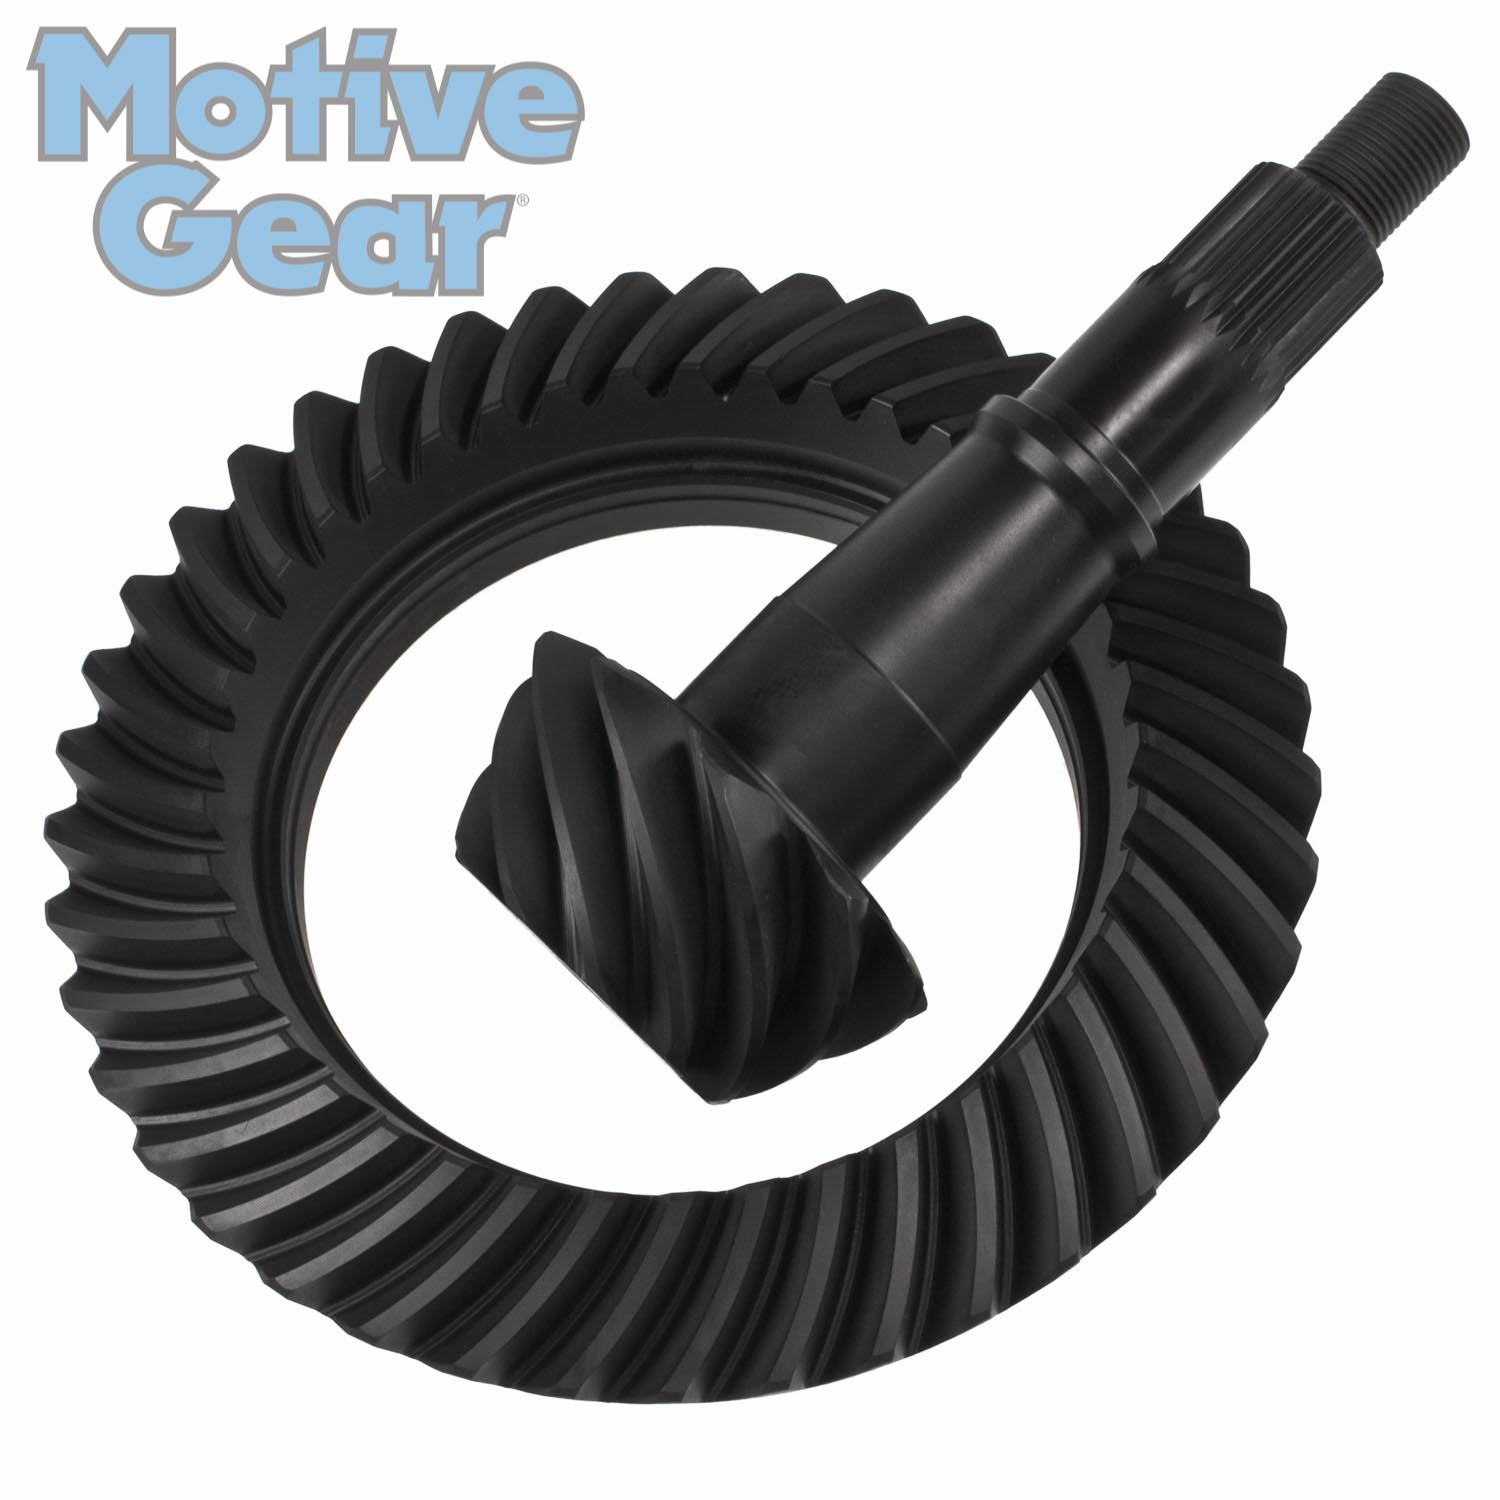 GM Chevy 9.76 14 Bolt Motive Gear Ring and Pinion Gear Set